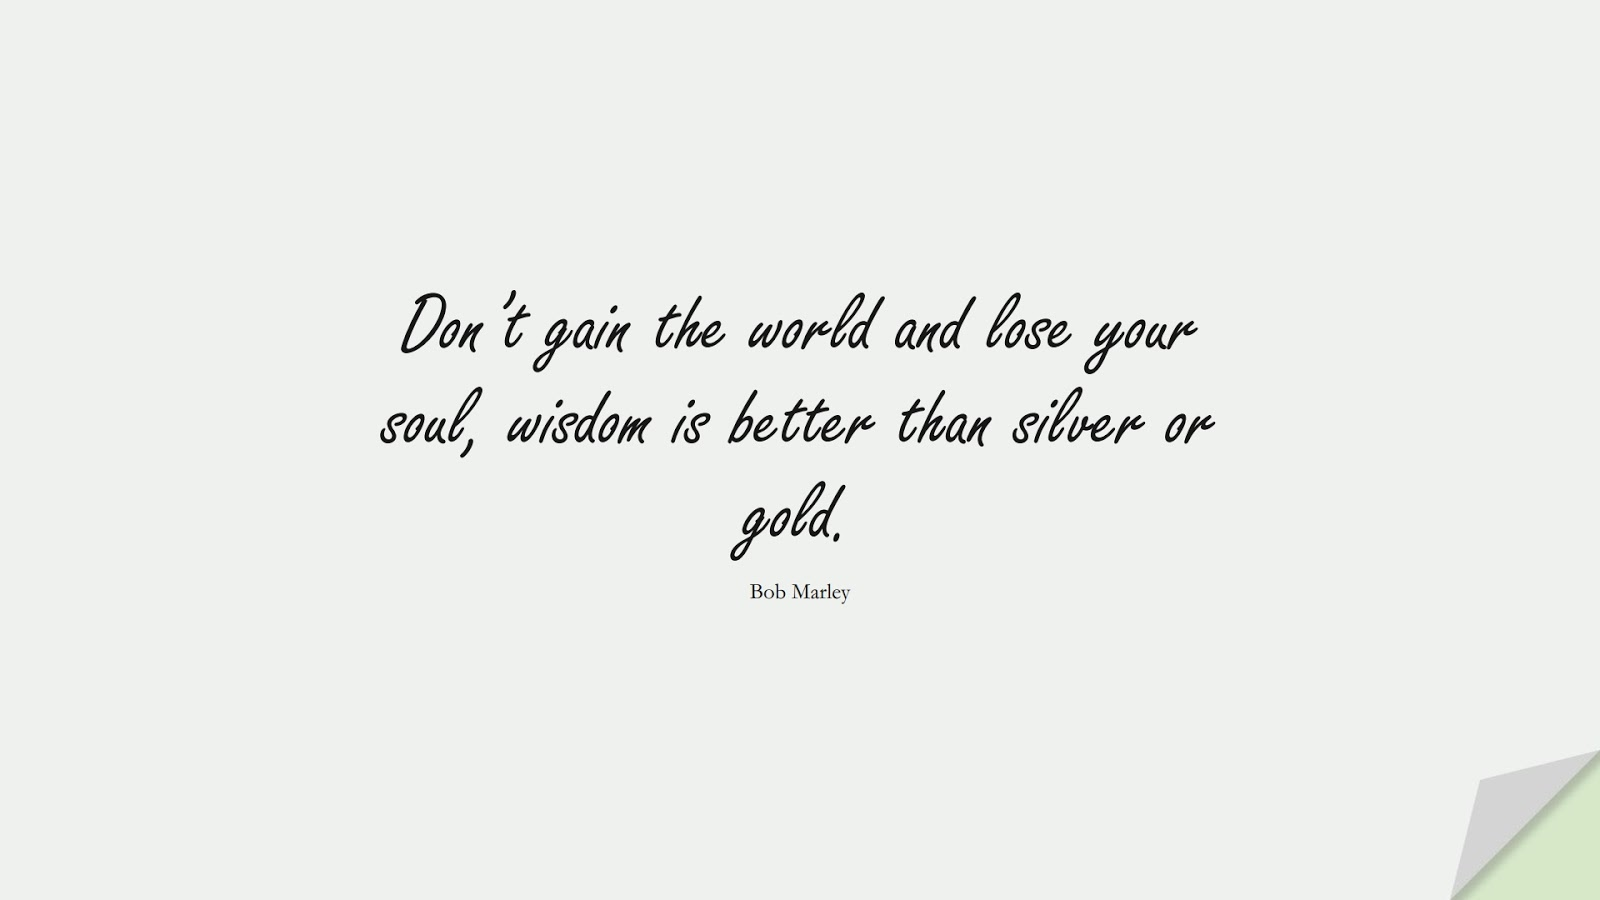 Don't gain the world and lose your soul, wisdom is better than silver or gold. (Bob Marley);  #WordsofWisdom